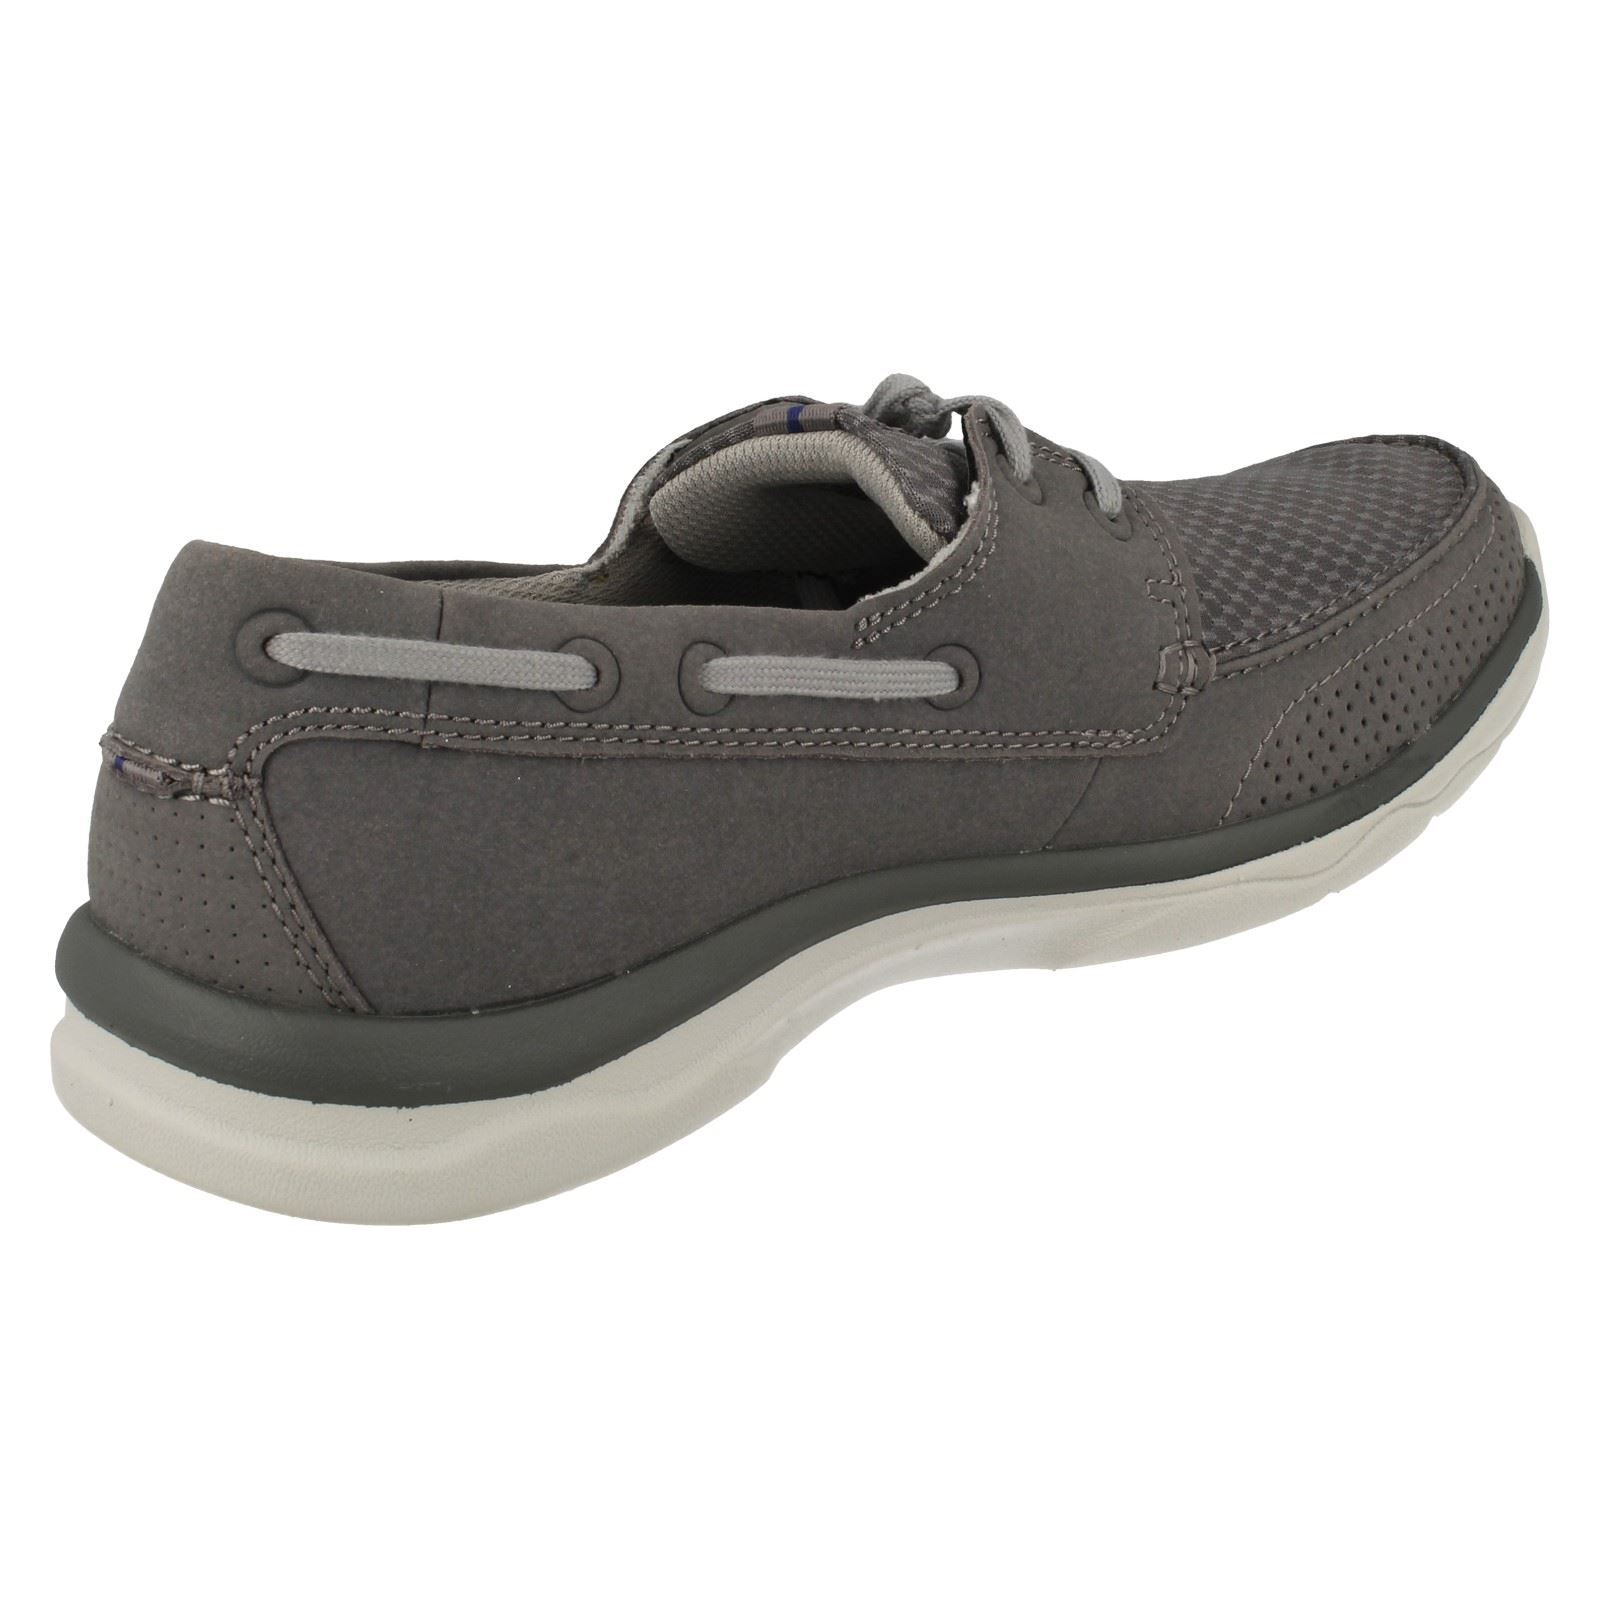 Men's Clarks Cloudstepers Casual Sporty Trainers Style - Marus Edge